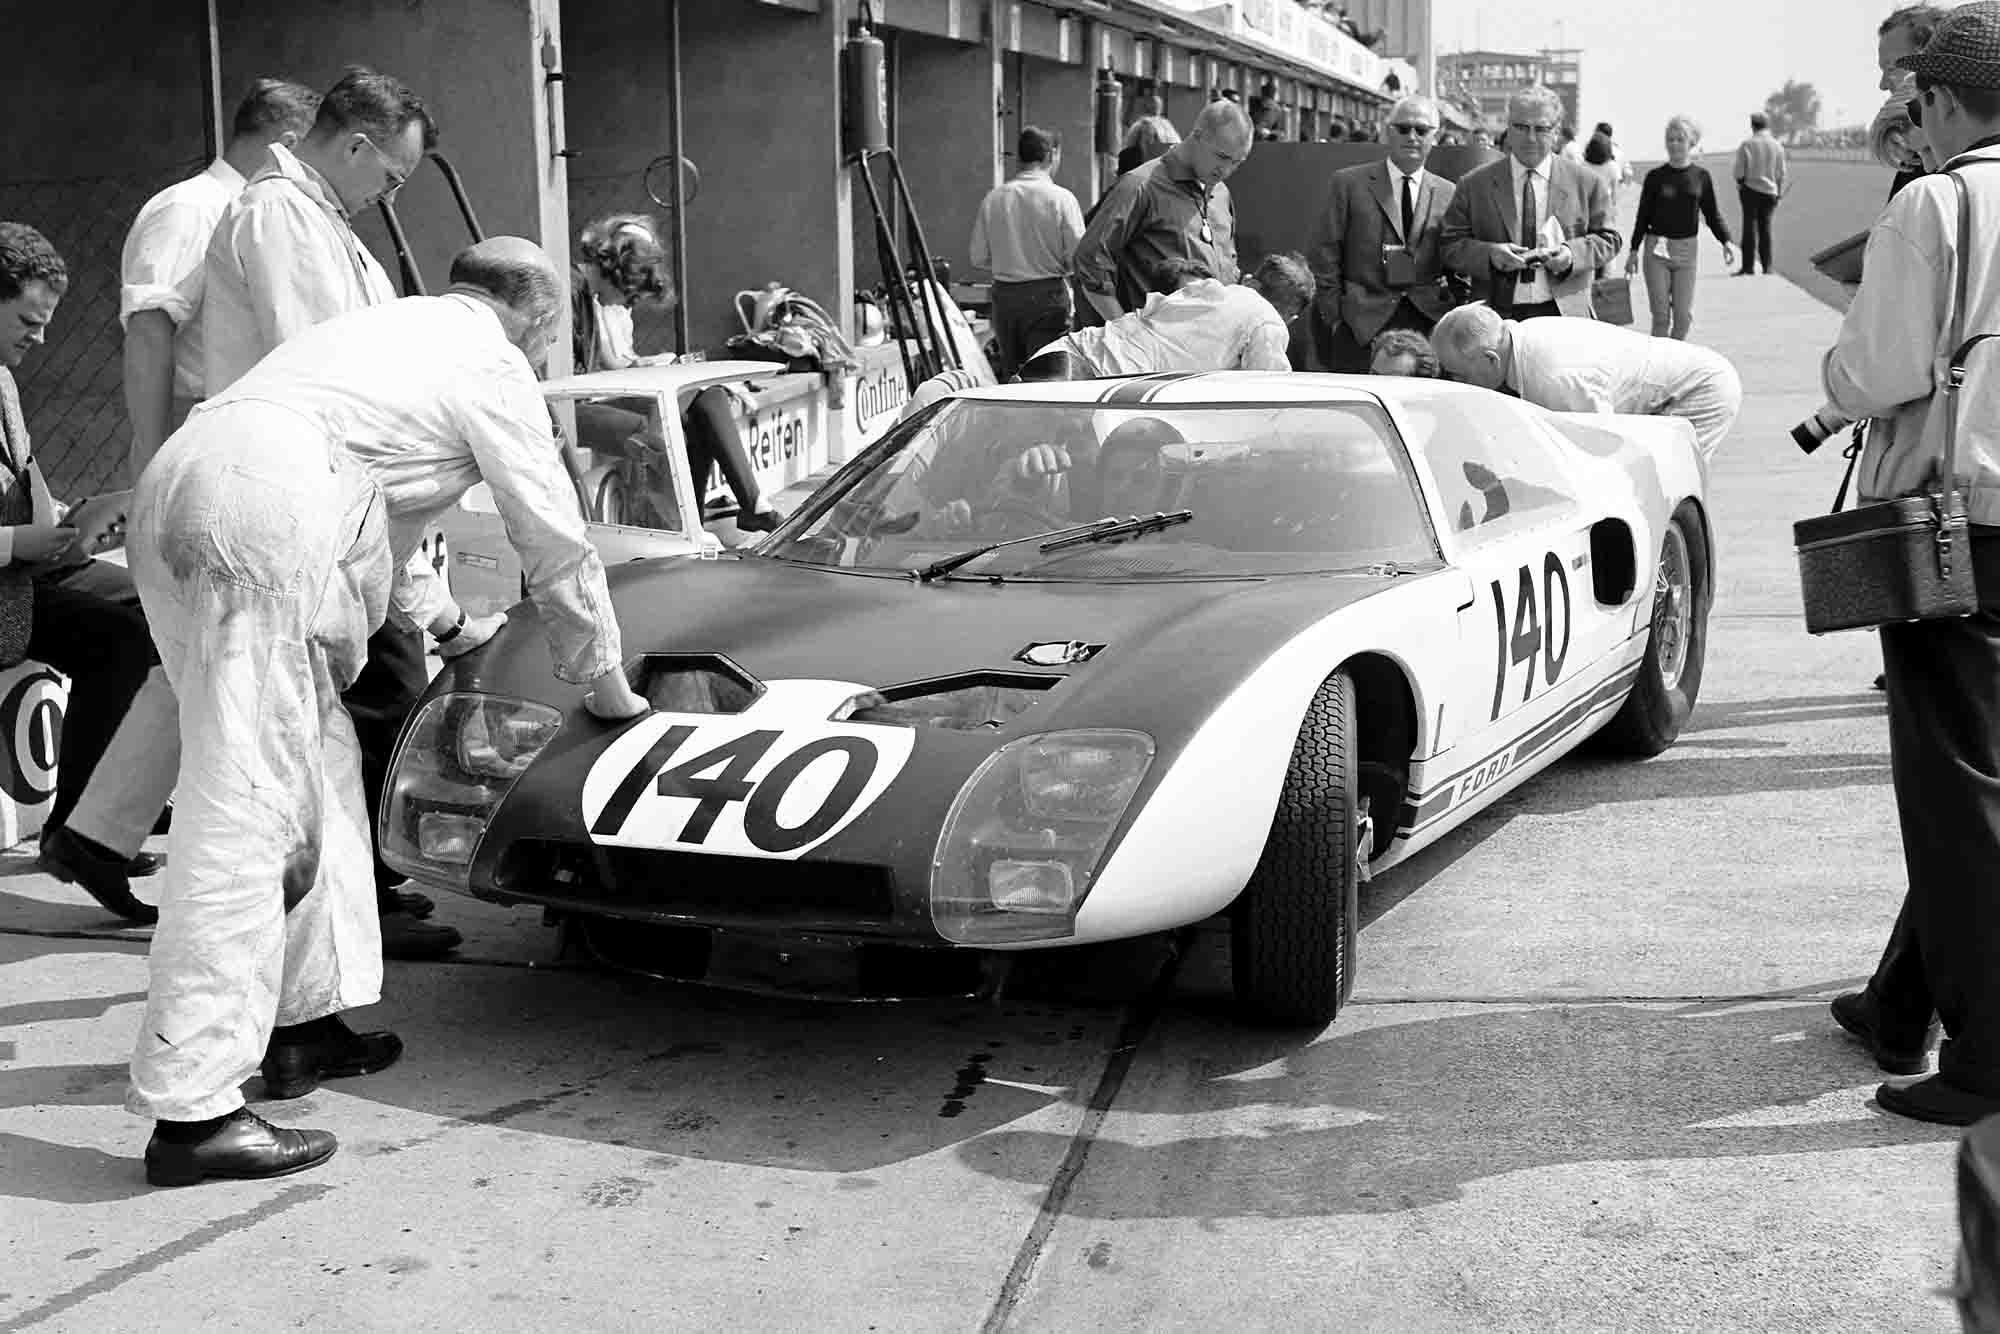 1964 Nurburgring 1000 Kms Nurburgring, Germany. 31st May 1964 The Ford GT40 (on its race debut) of Phil Hill and Bruce McLaren is worked on in the pits.